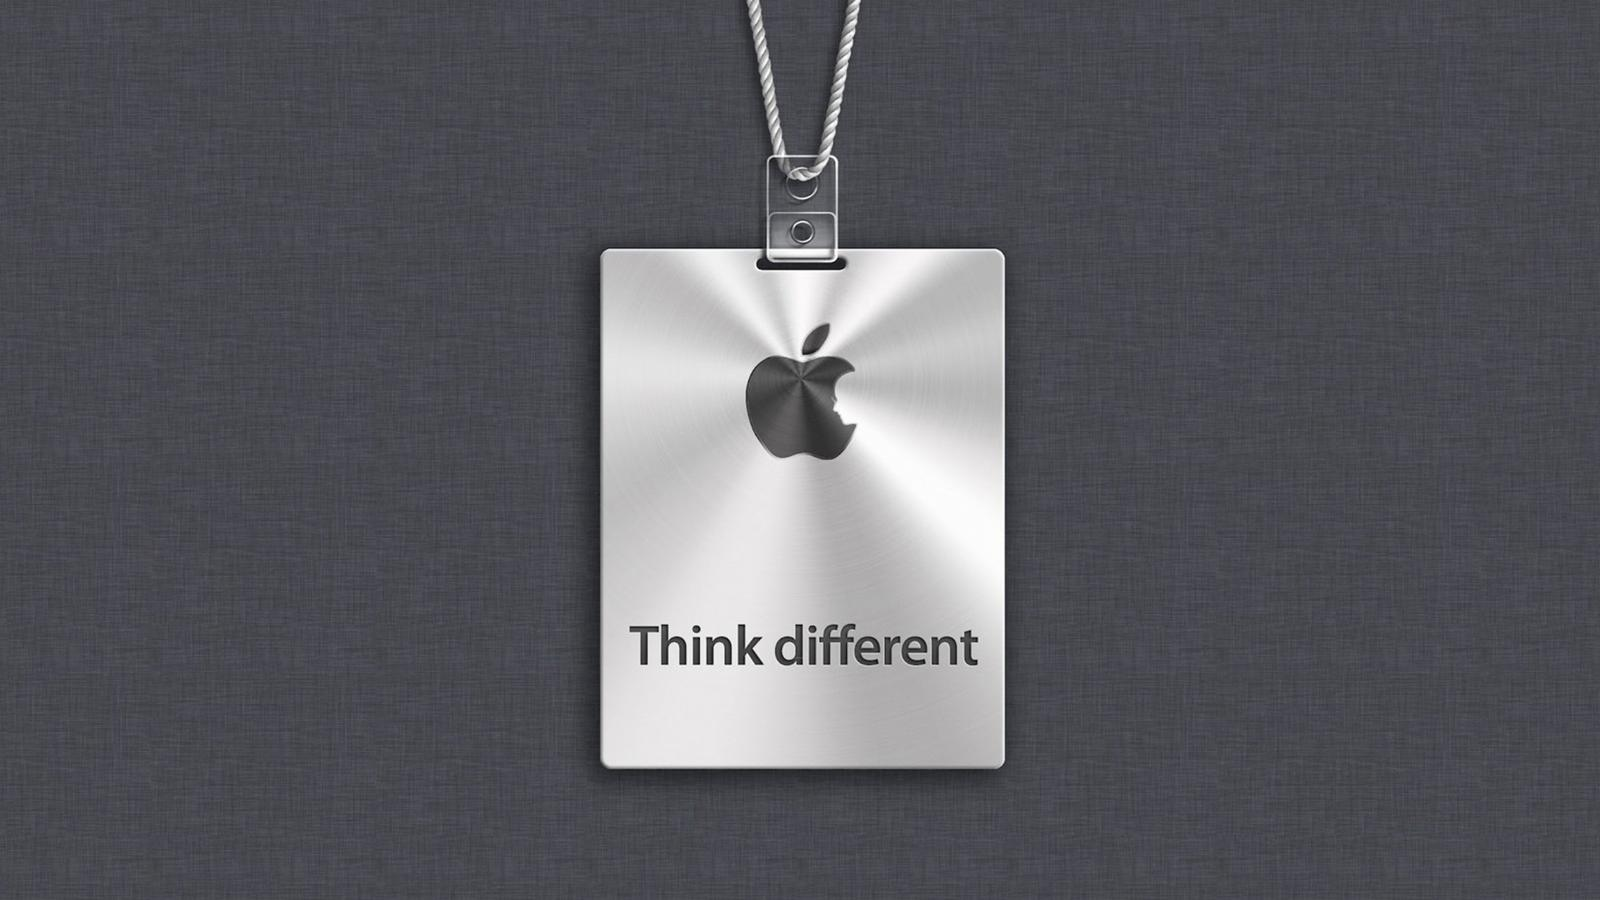 Apple Logo Think Different Hd Wallpaper Wallpaper